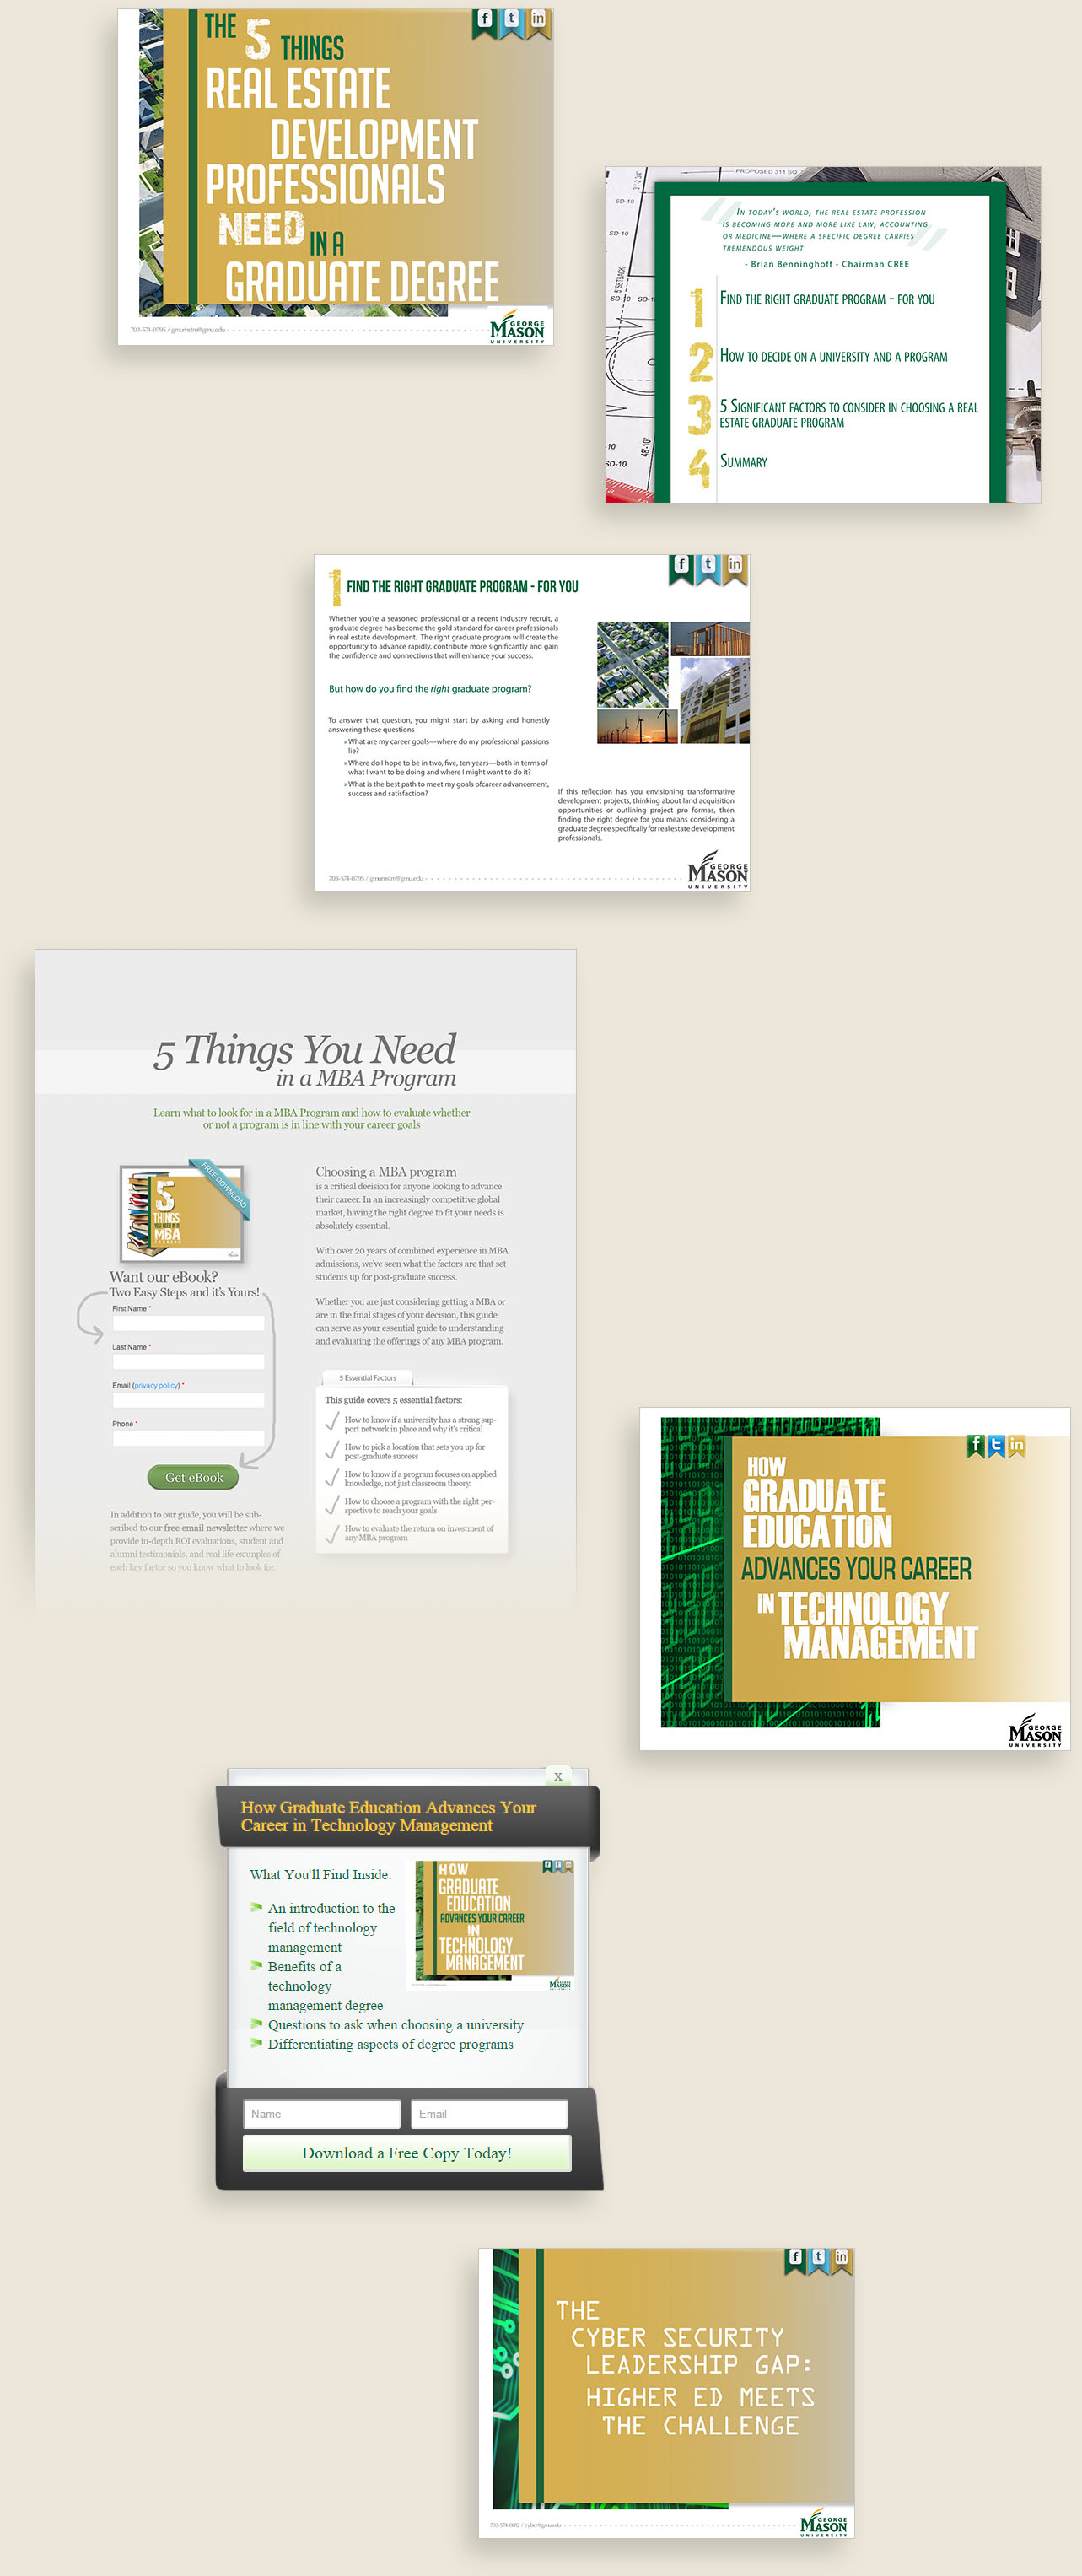 For GMU, the project assets included several high quality and informative eBooks.